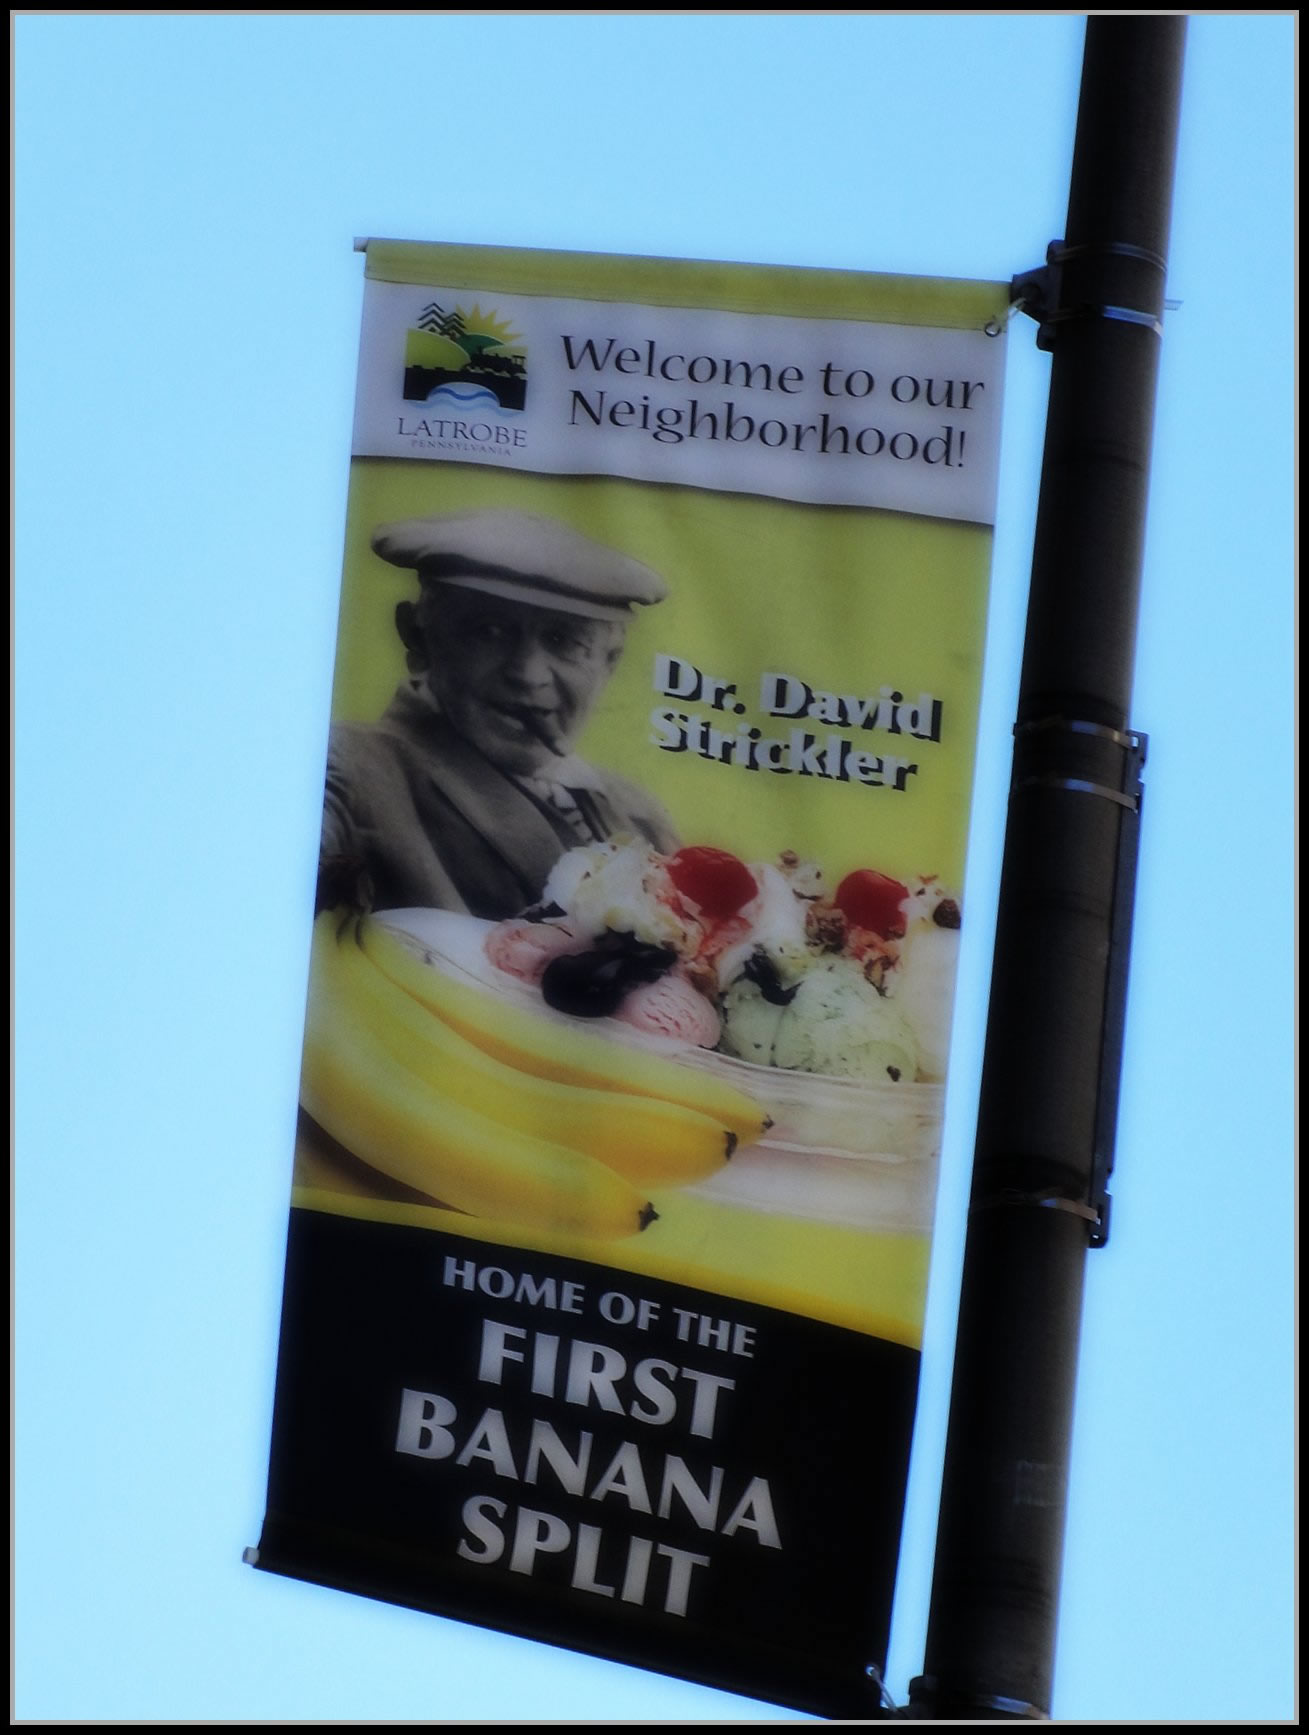 A banner in Latrobe boasting of being the home of the banana split